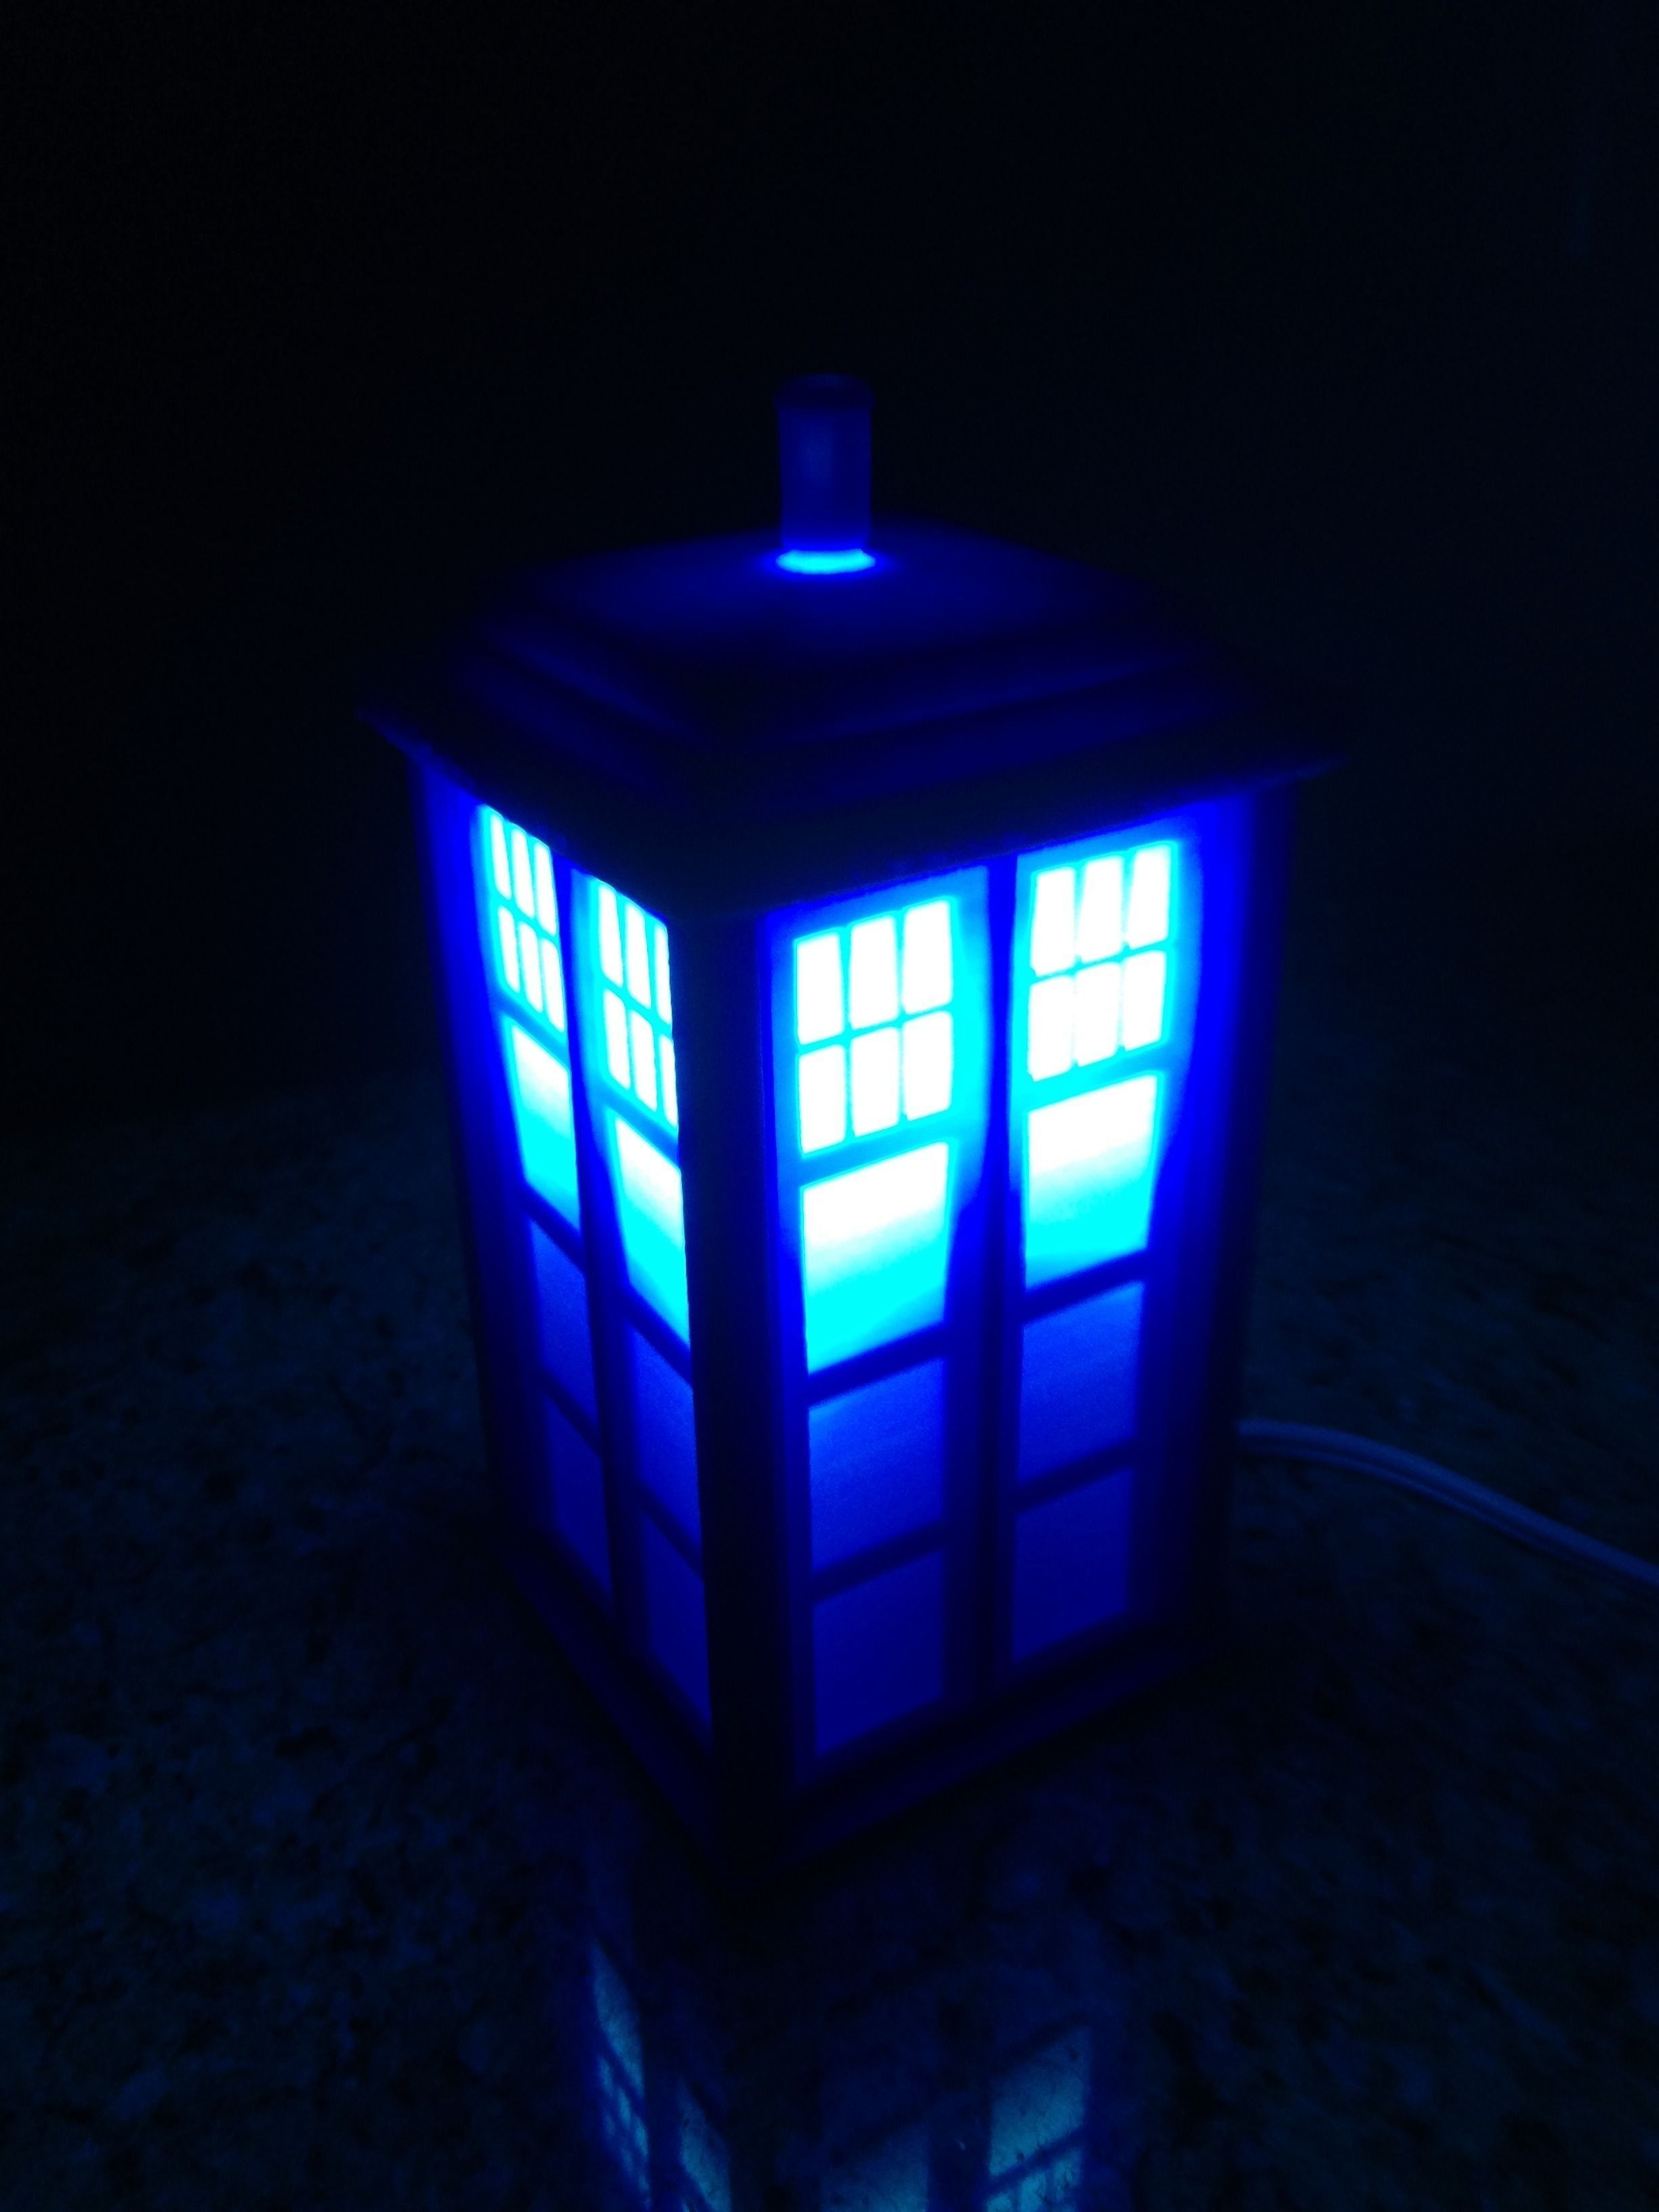 Tardis lamp or circa 1960s london police call box 3d model 3d tardis lamp or circa 1960s london police call box 3d model stl 2 mozeypictures Gallery